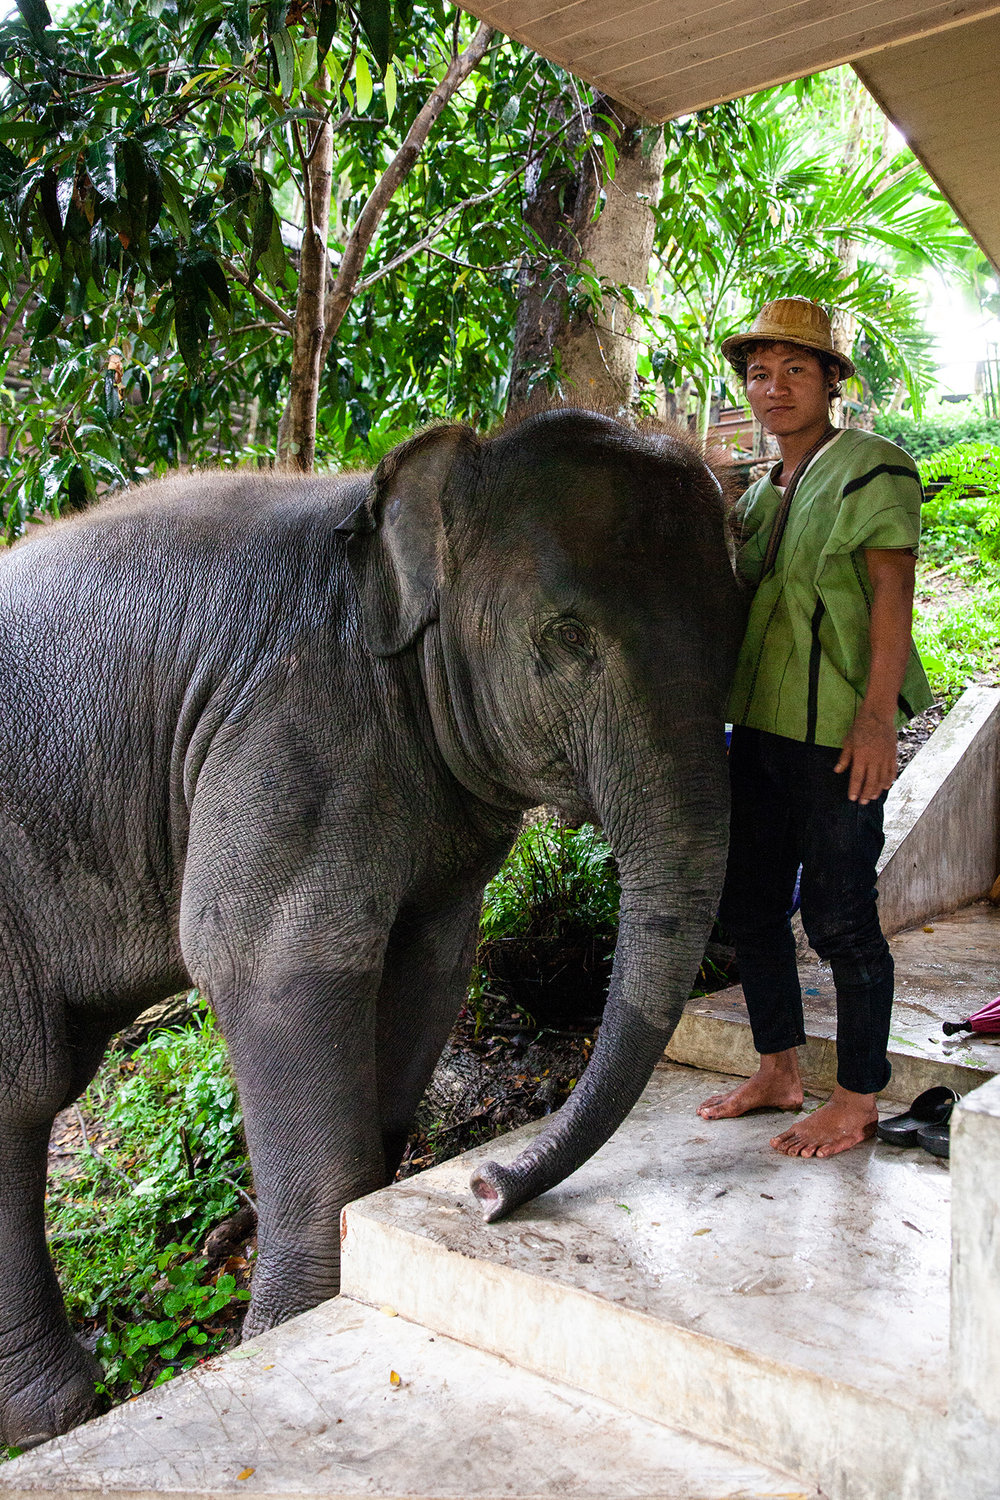 Tang Mo the elephant and her mahout Gola